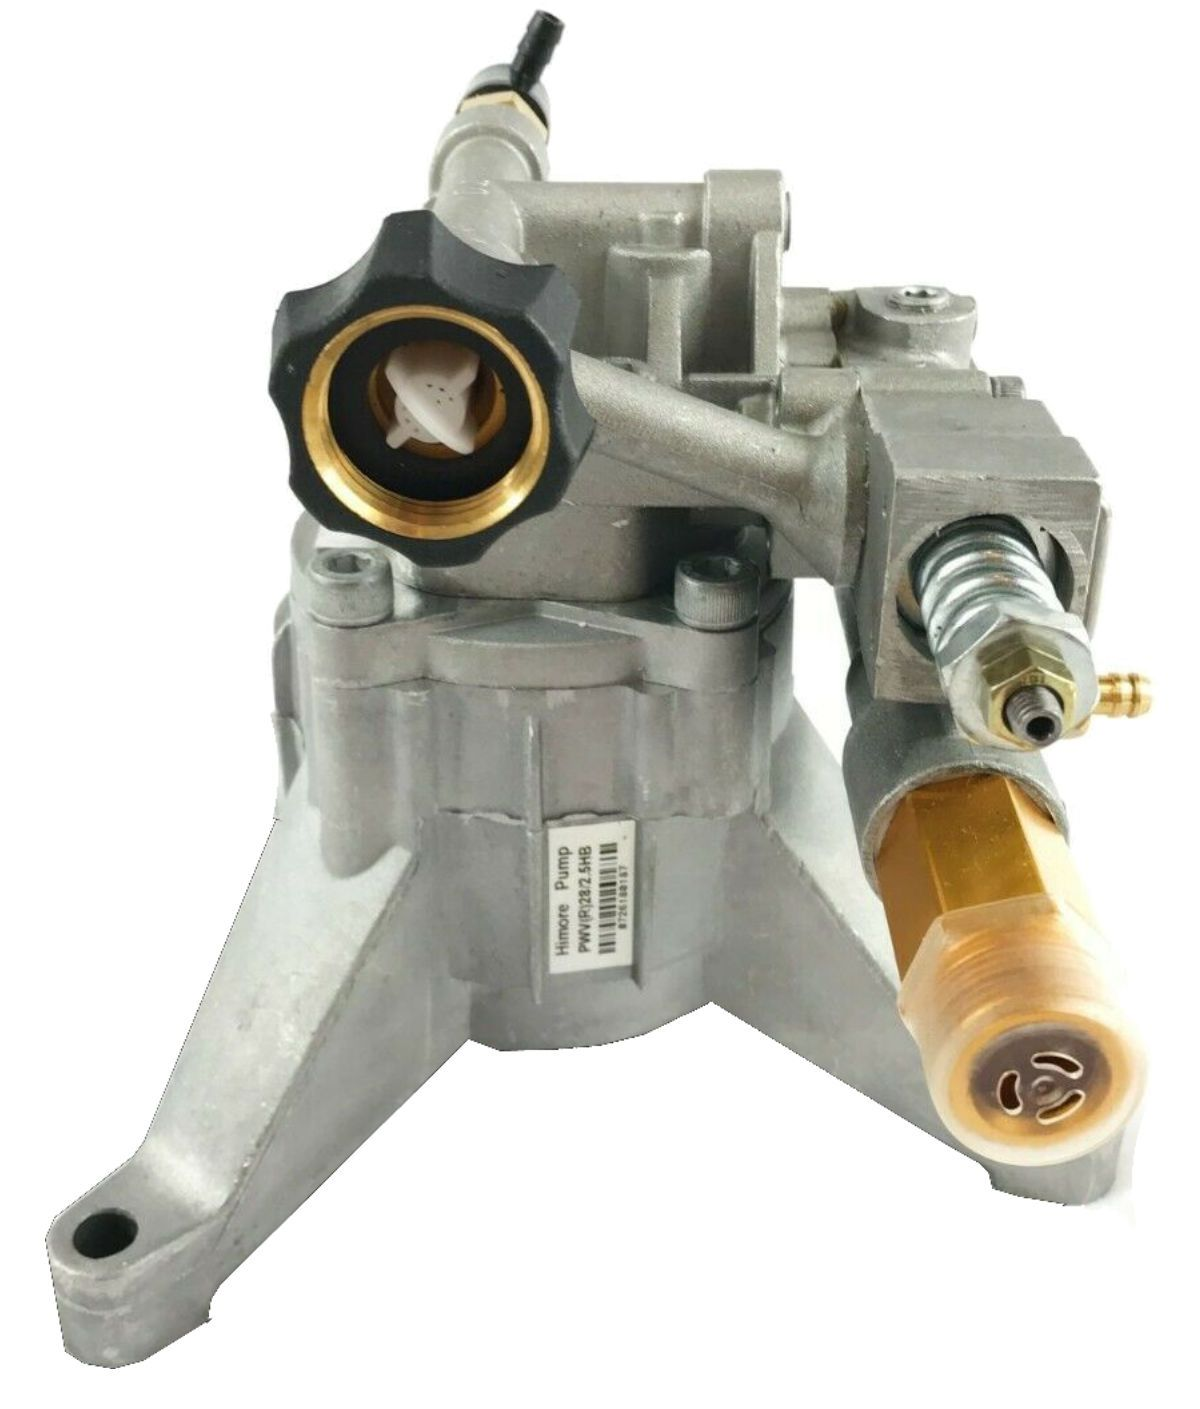 2700 PSI PRESSURE WASHER WATER PUMP Westinghouse WP2300 WP2500